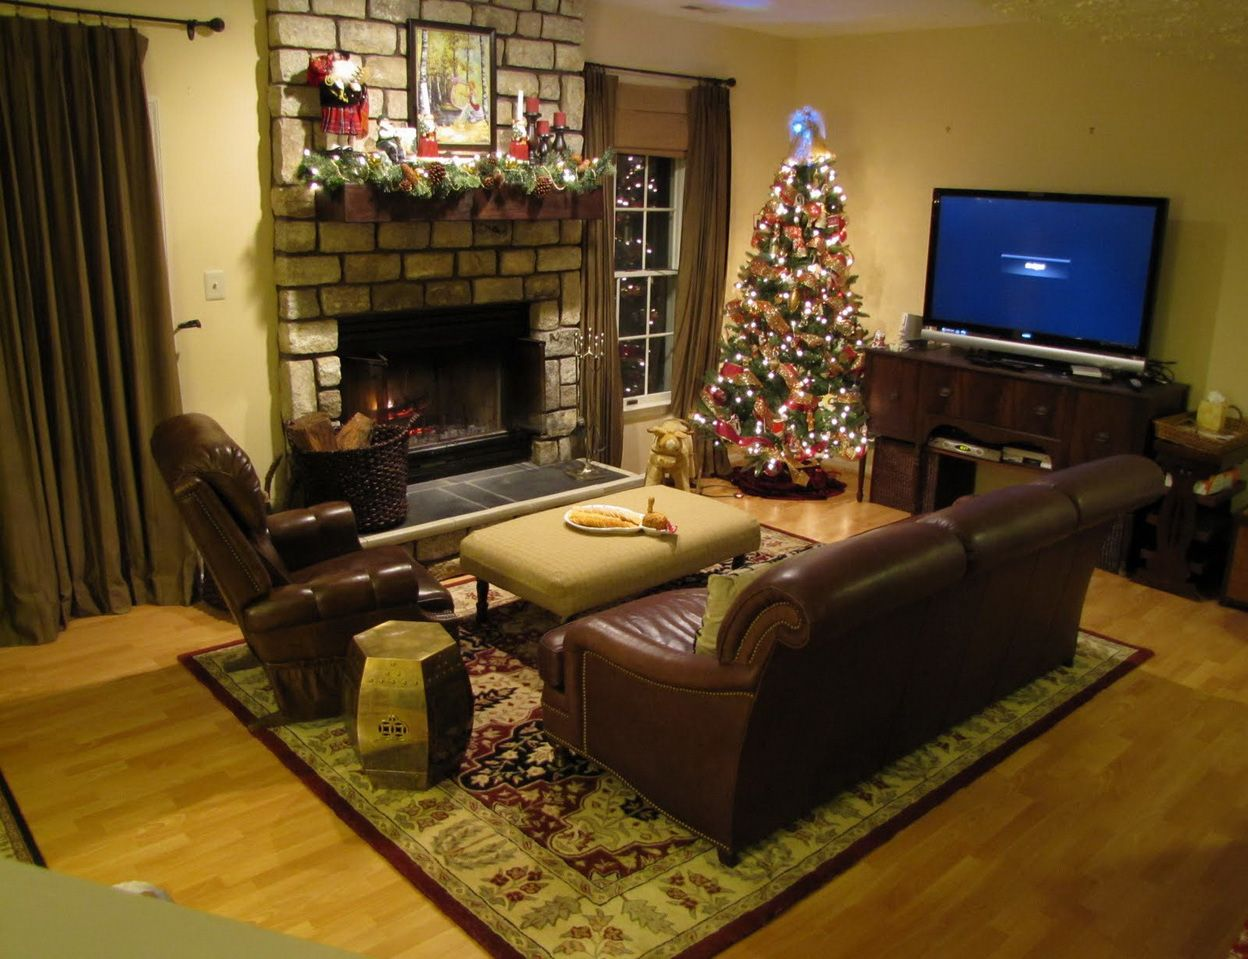 Living Room Decorating Small Family Rooms 1000 images about small family room with fireplace decorating ideas on pinterest rooms and fireplaces